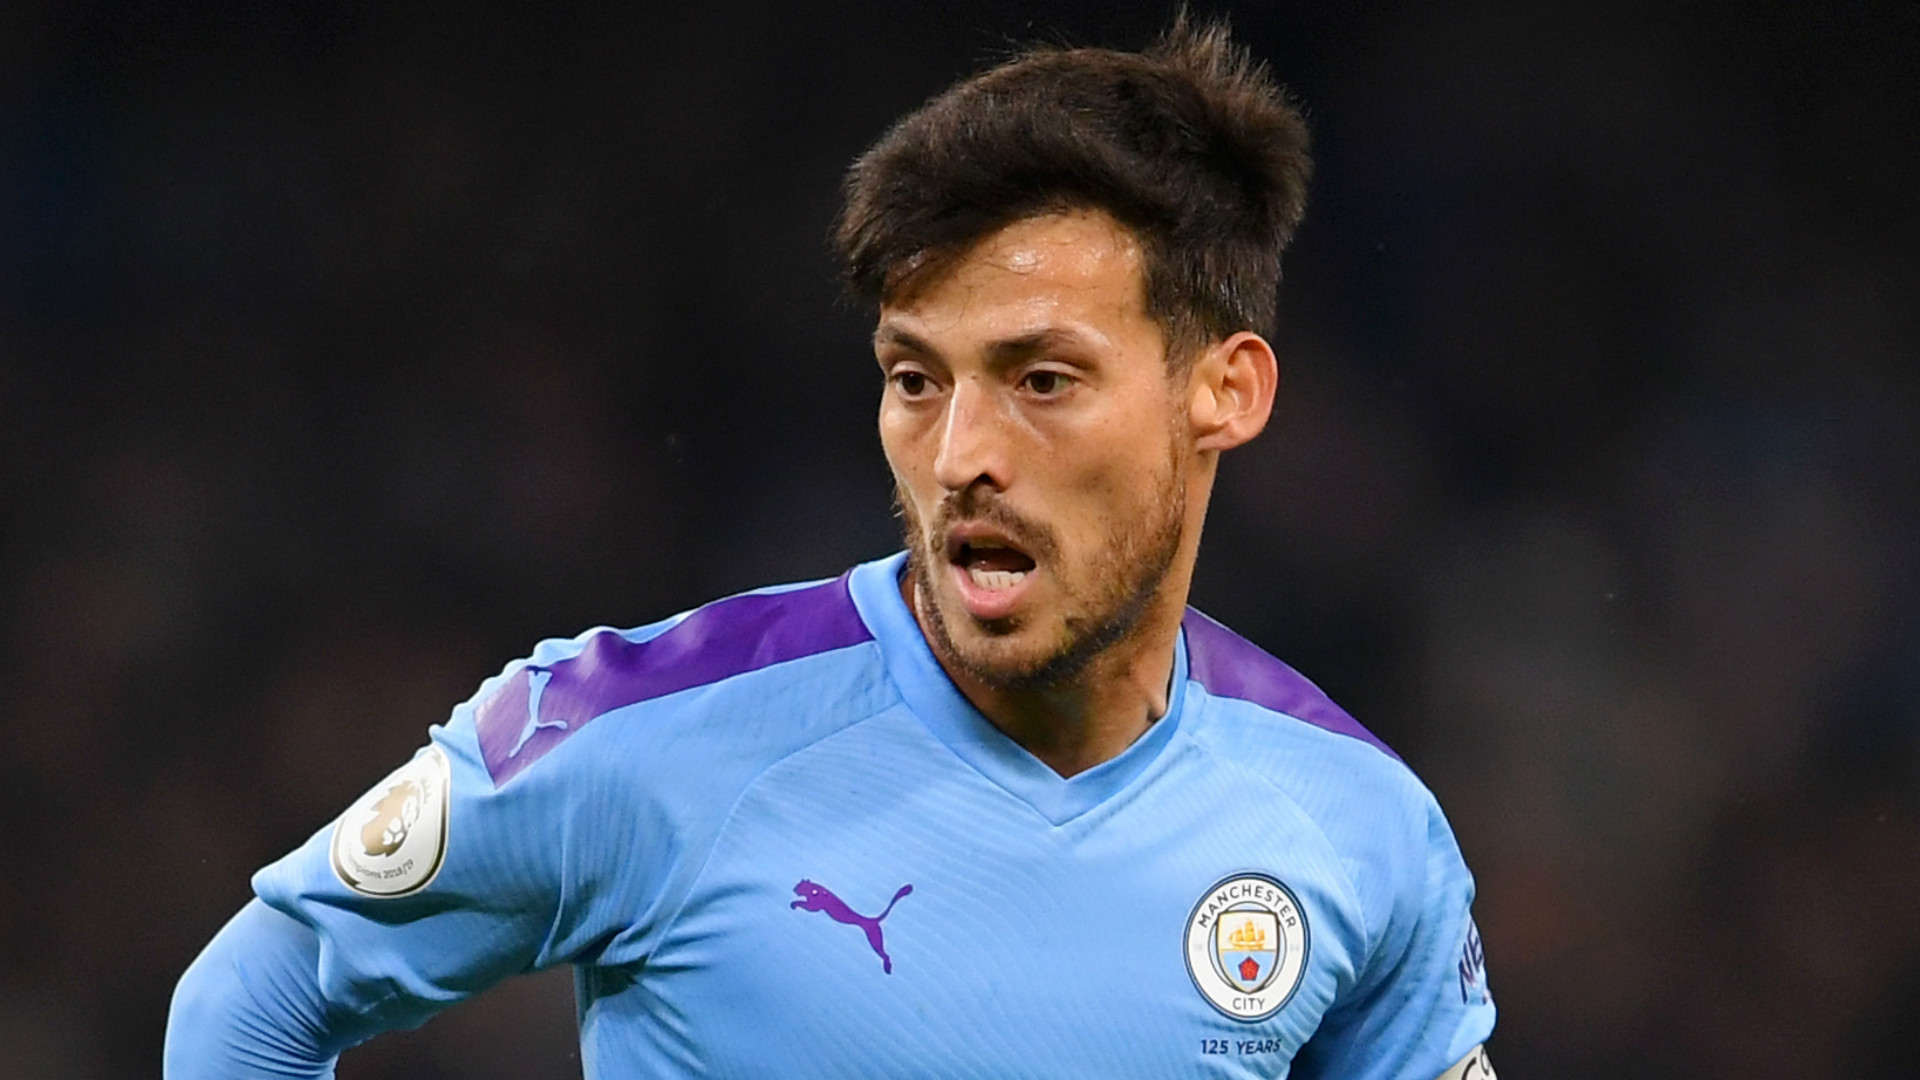 David Silva will get proper farewell at Manchester City, says ...